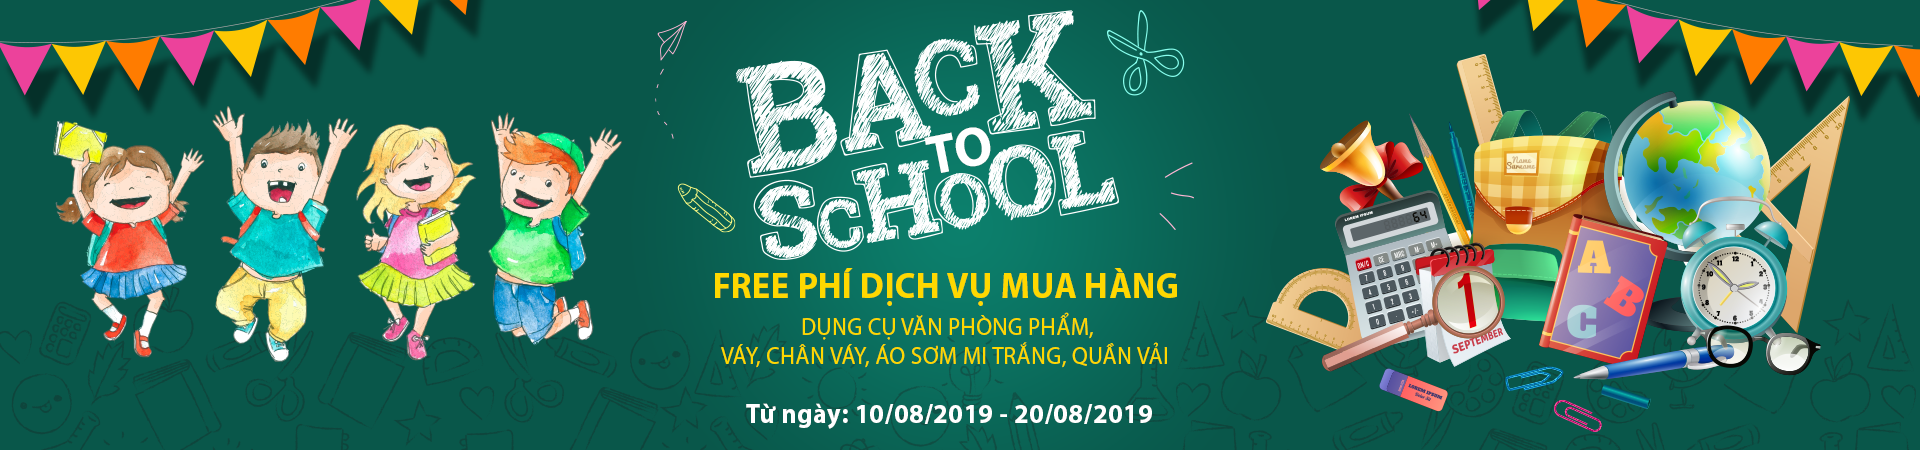 BACK TO SCHOOL FOR WEORDER